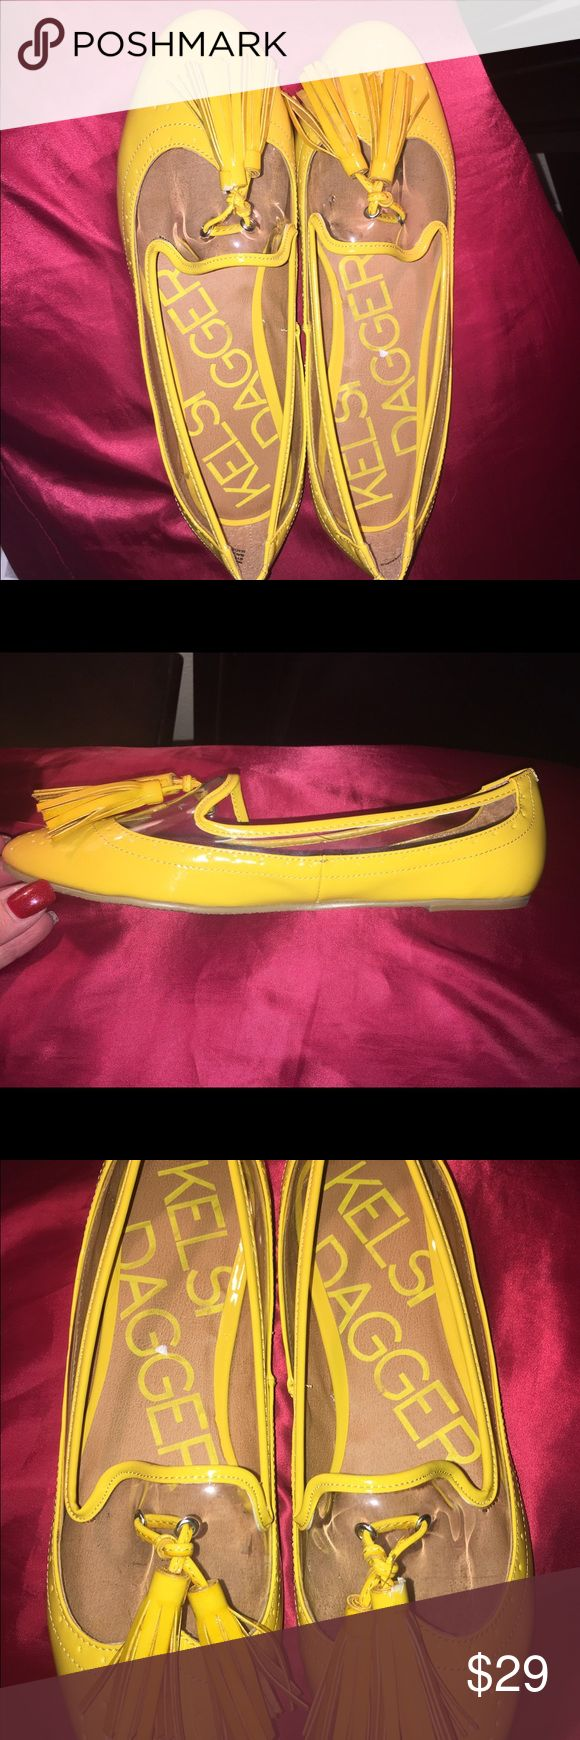 Kelsi Dagger Mercy Flats Re-poshing . Adorable Kelsi Dagger yellow vinyl flats. Never worn outside. Although they are 9s, they run HALF SIZE SMALL! Kelsi Dagger Shoes Flats & Loafers